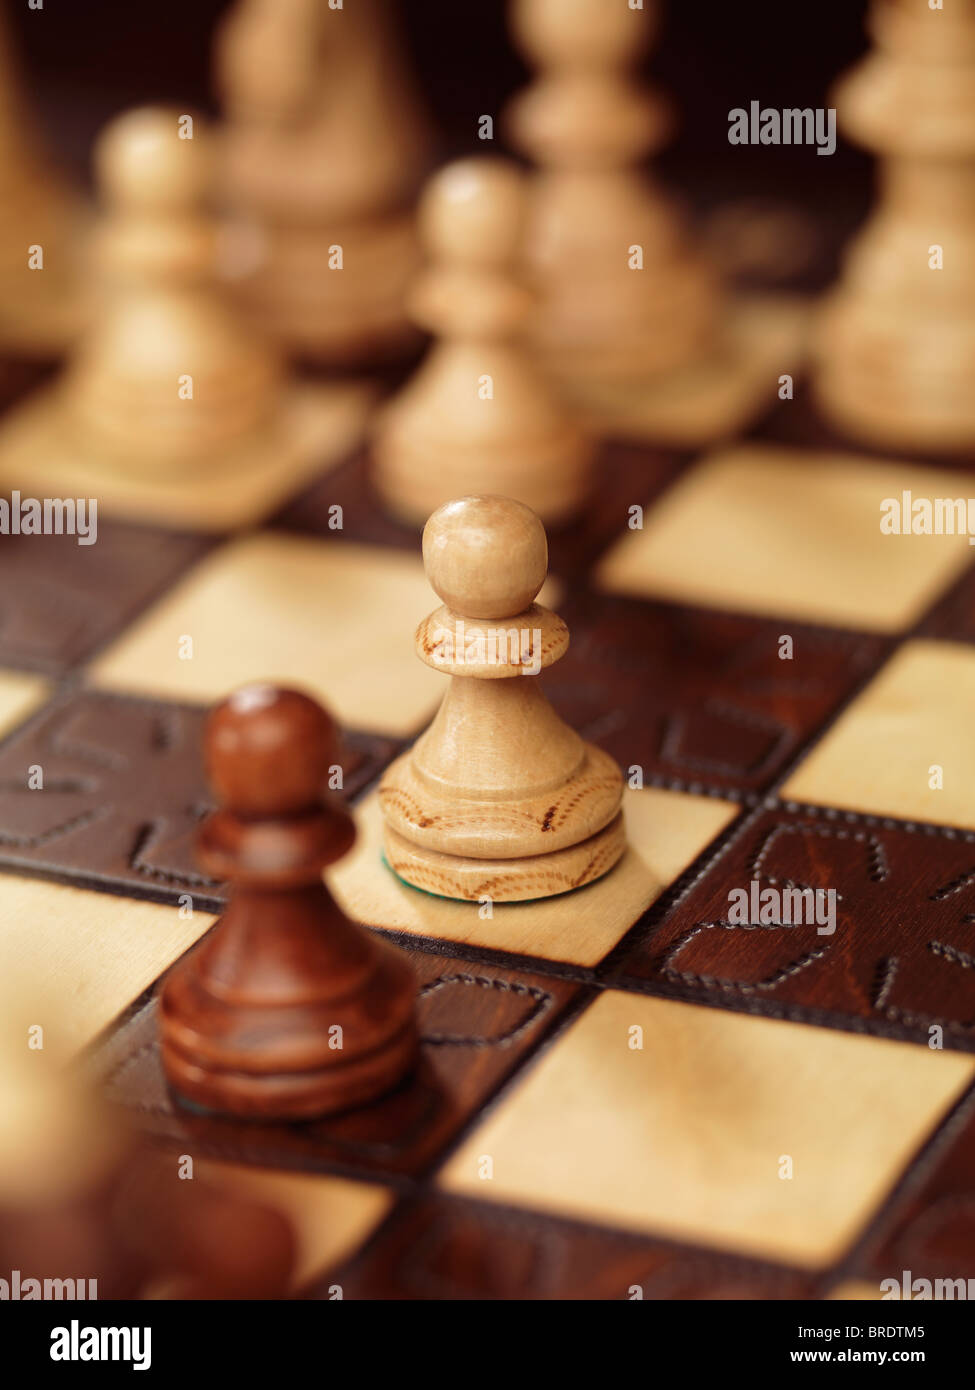 Two pawns on a chessboard - Stock Image